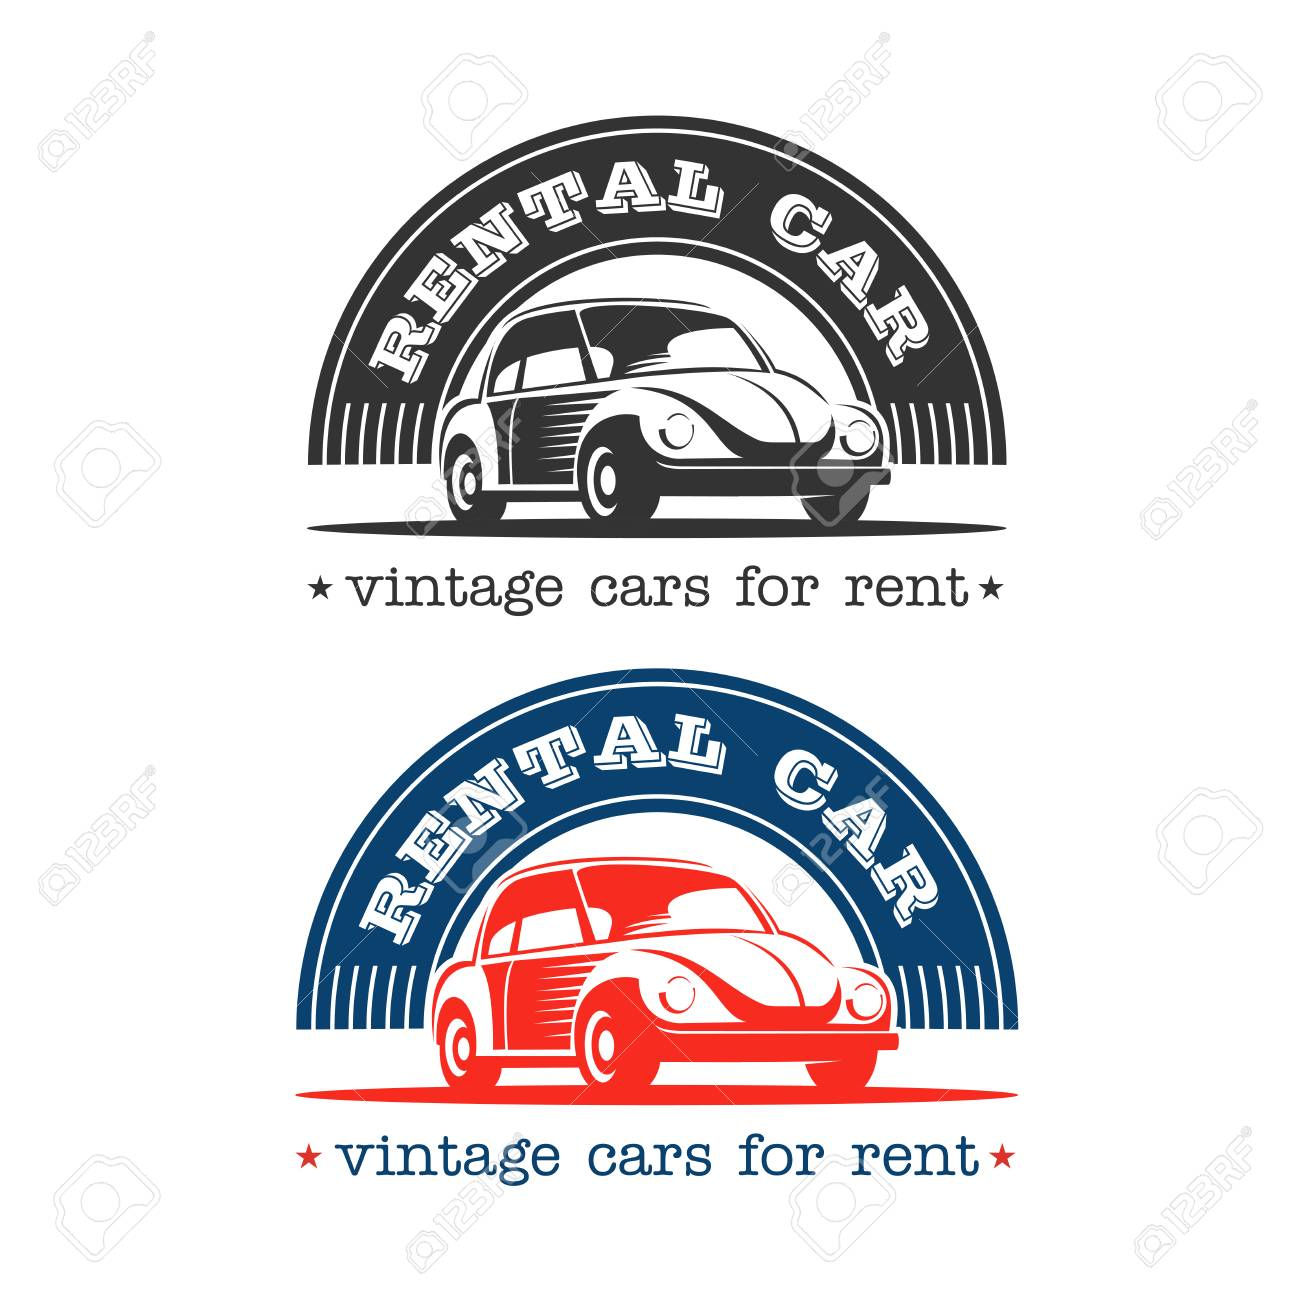 Rental Of Vintage Cars. Vintage Cars For Rent. Vector Logos ...